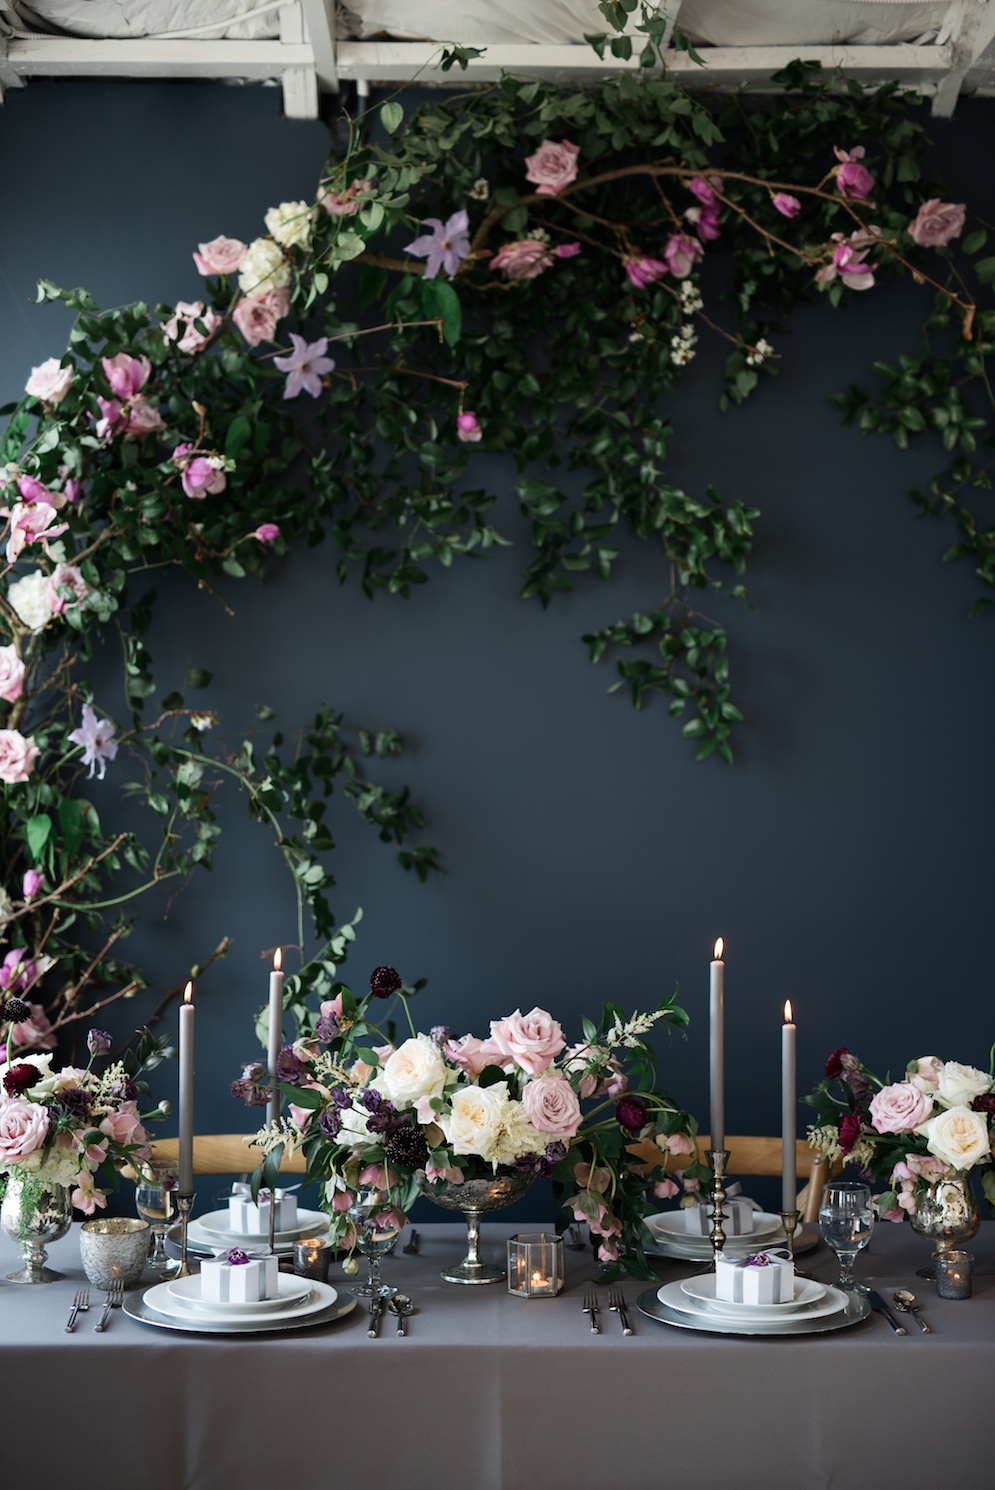 floral arch ideas floral wall ideas floral wall ideas utah wedding flowers calie rose